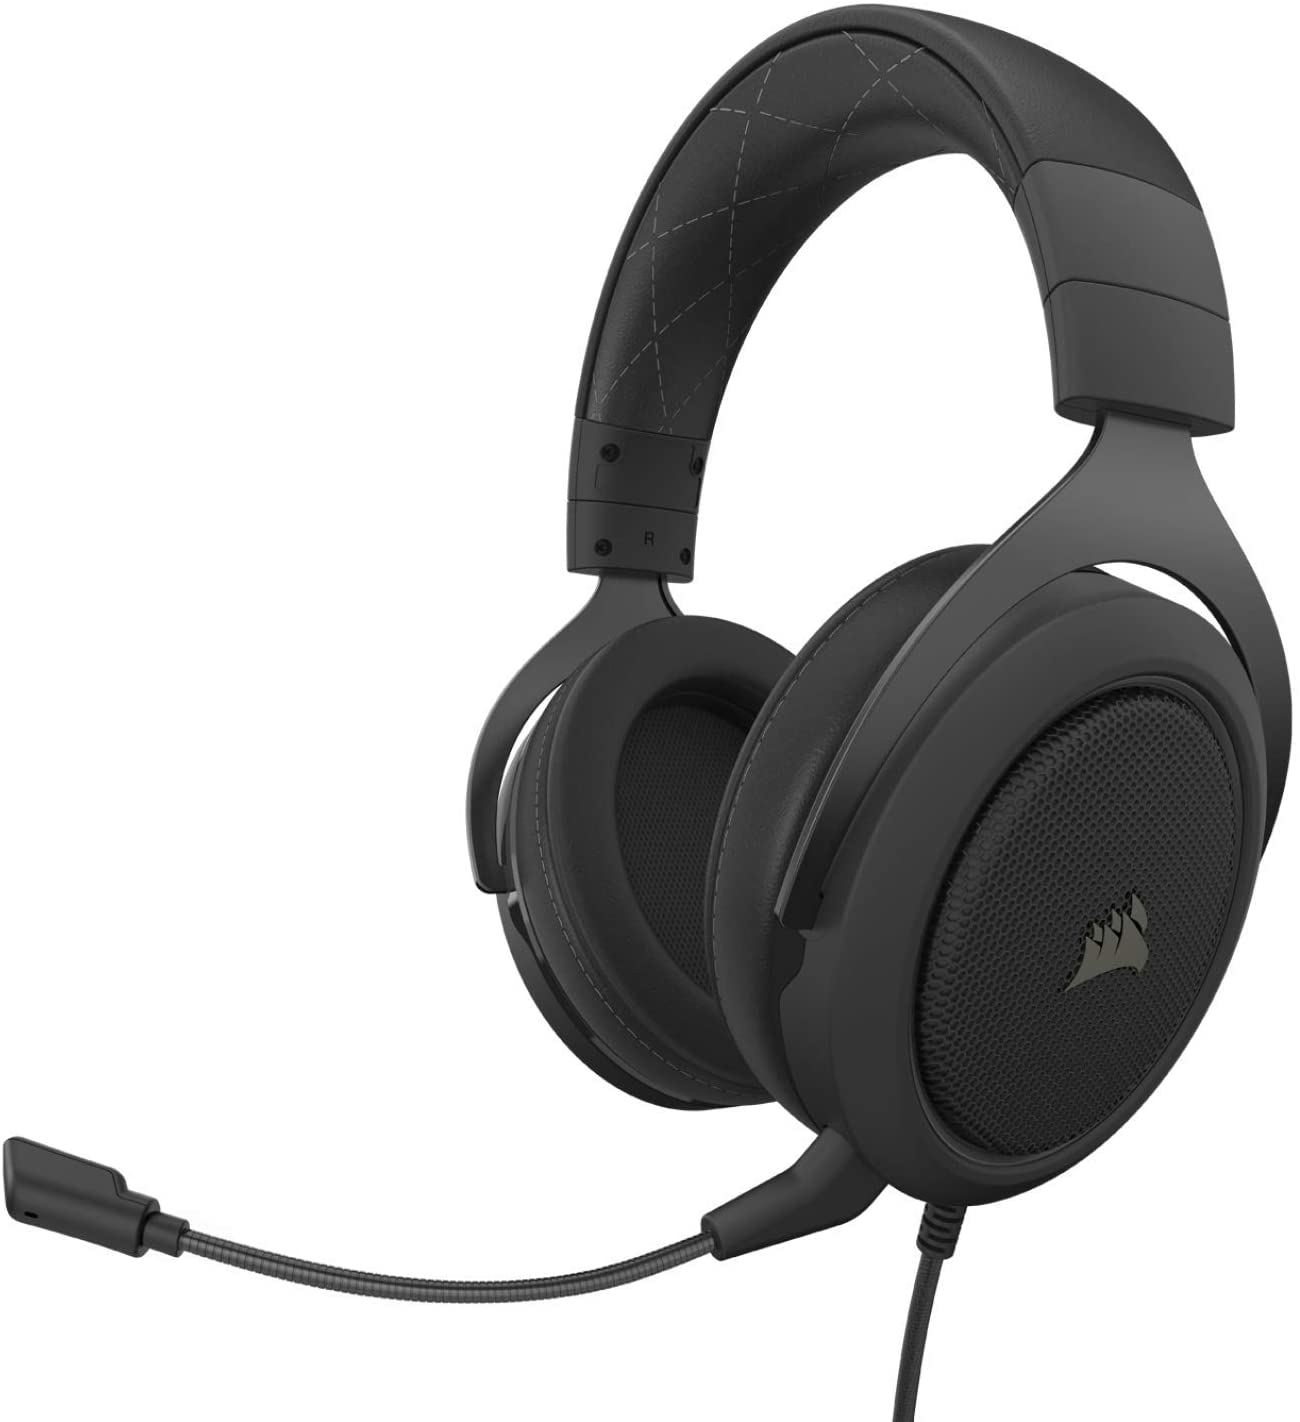 Corsair HS60 PRO – Gaming Headset with USB DAC